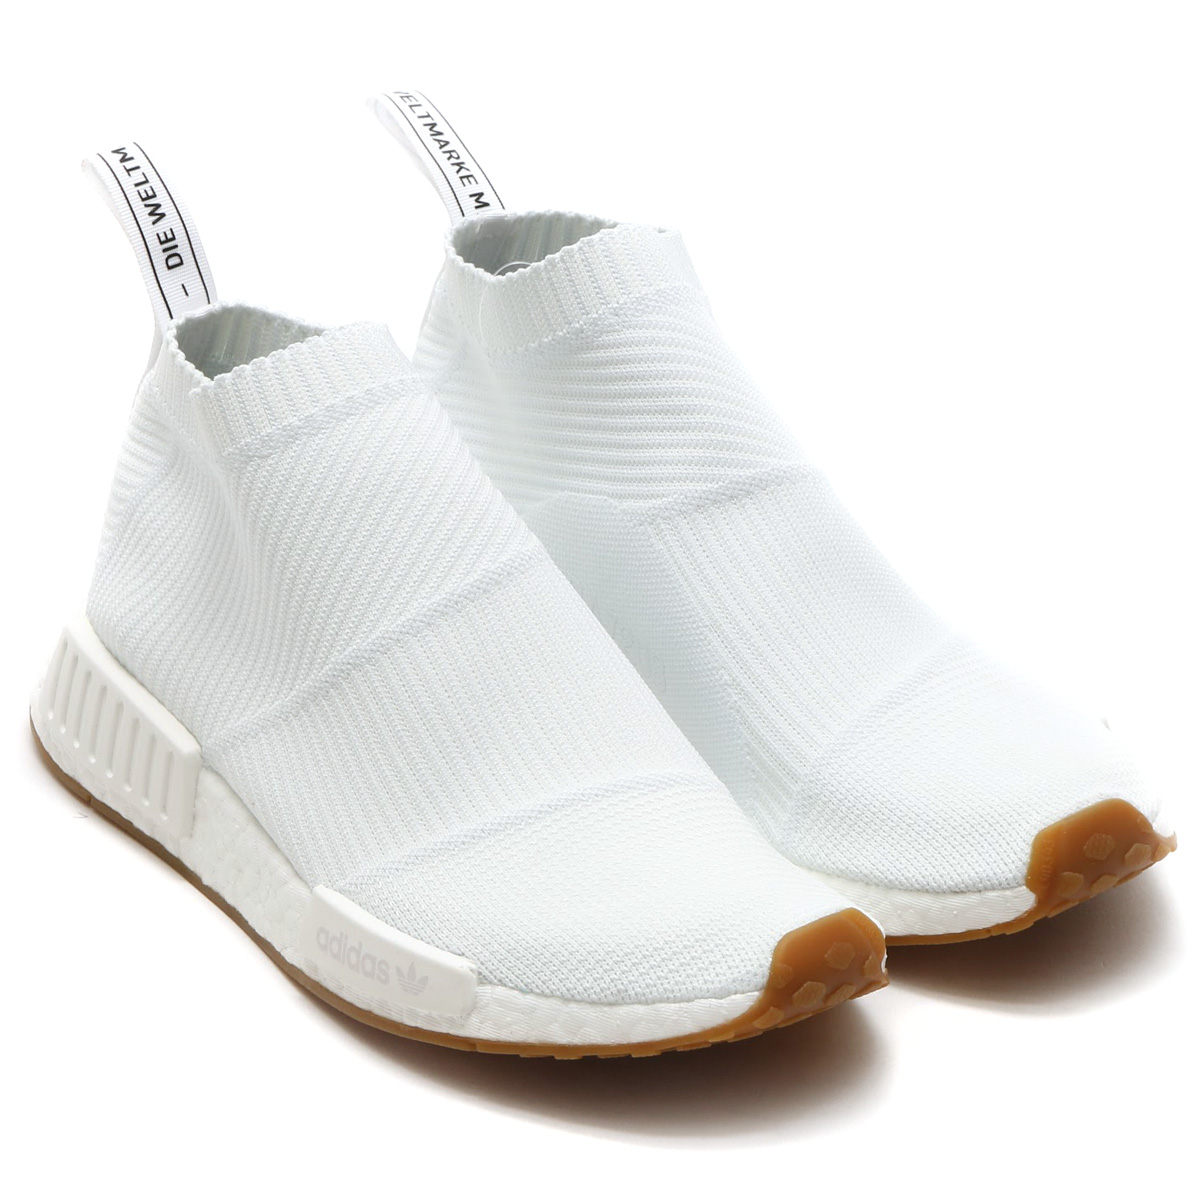 adidas Originals NMD CS1 PK(アディダス NMD CS1 PK)(RUNNING WHITE)17SS-S